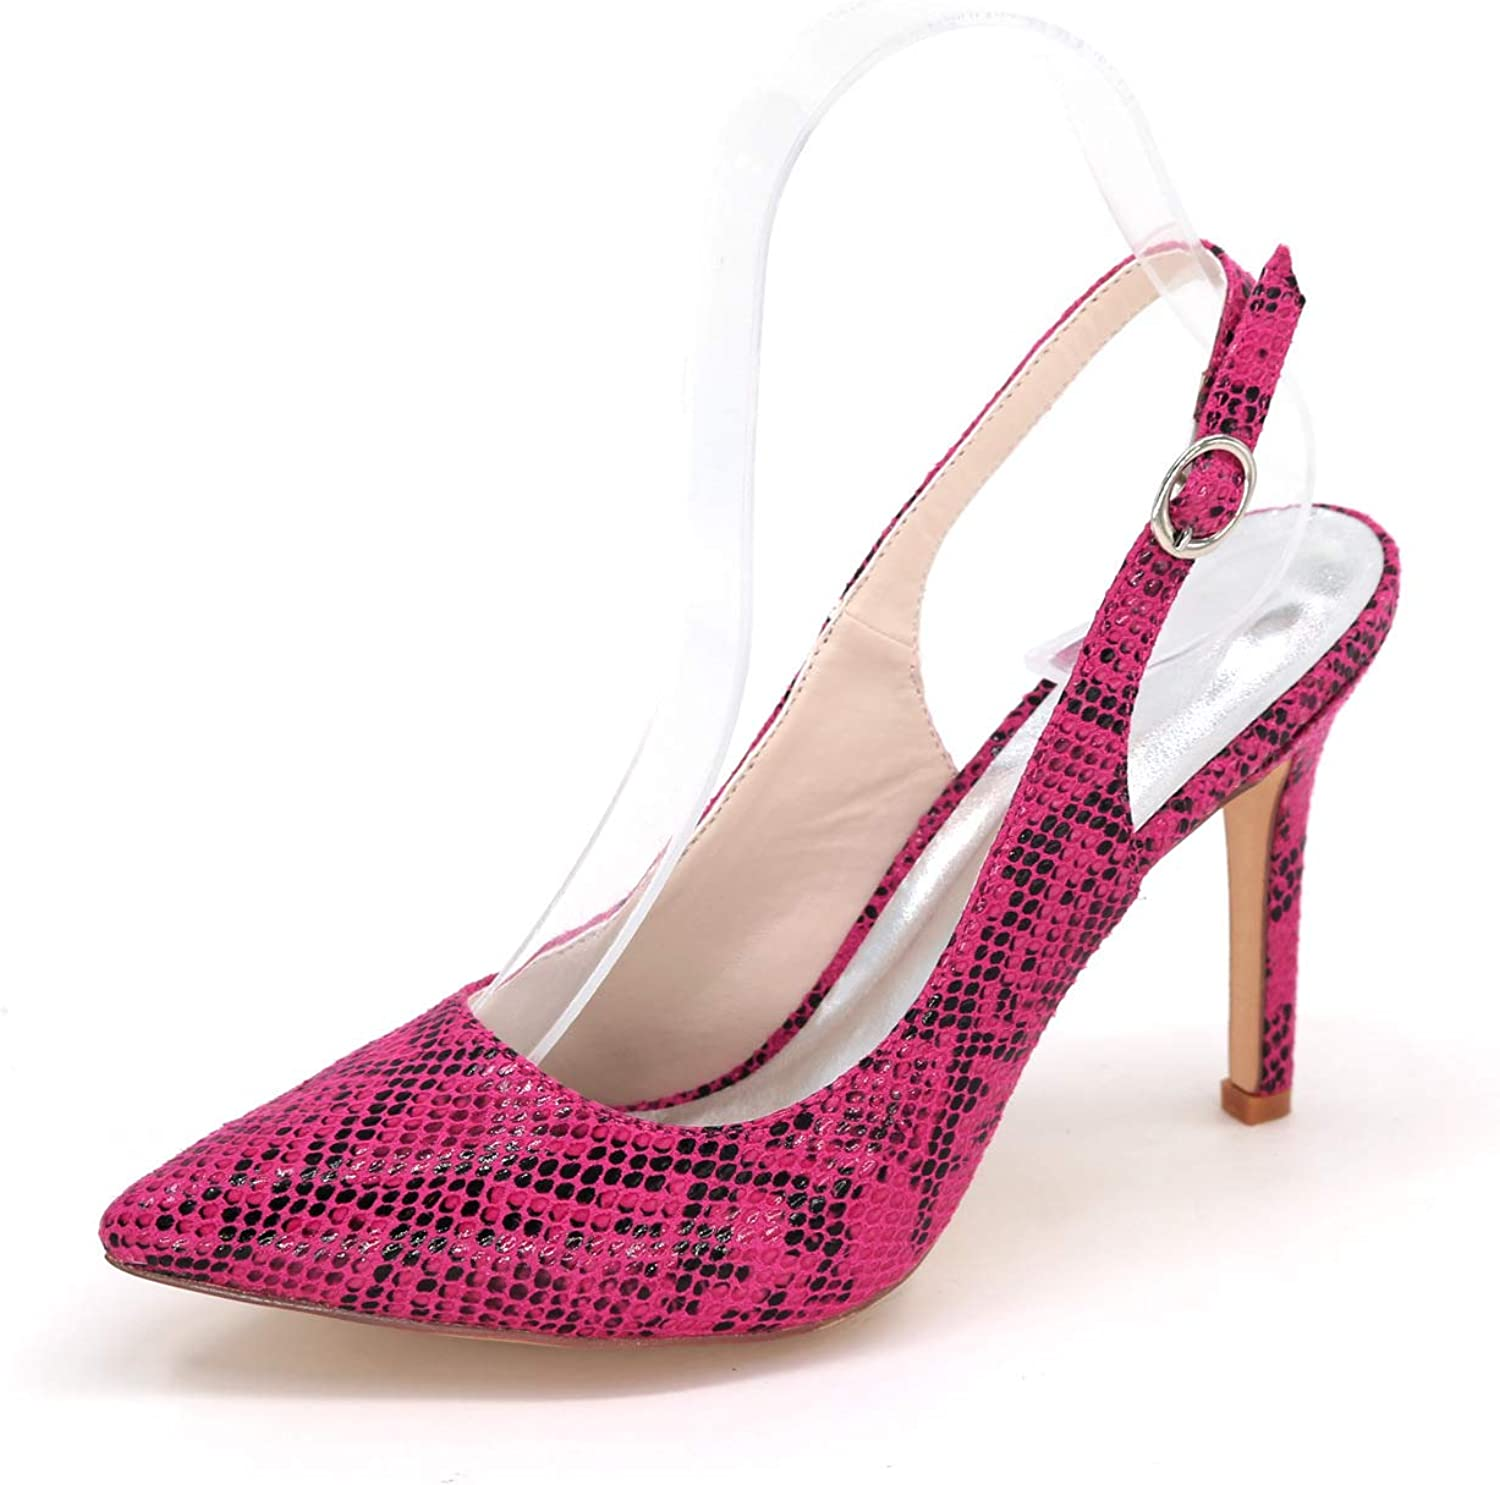 LLBubble Women High Heels Snakeskin Party Dress shoes Pointed Toe Ankle Buckle Stilettos Prom Evening Pumps 0608-20S